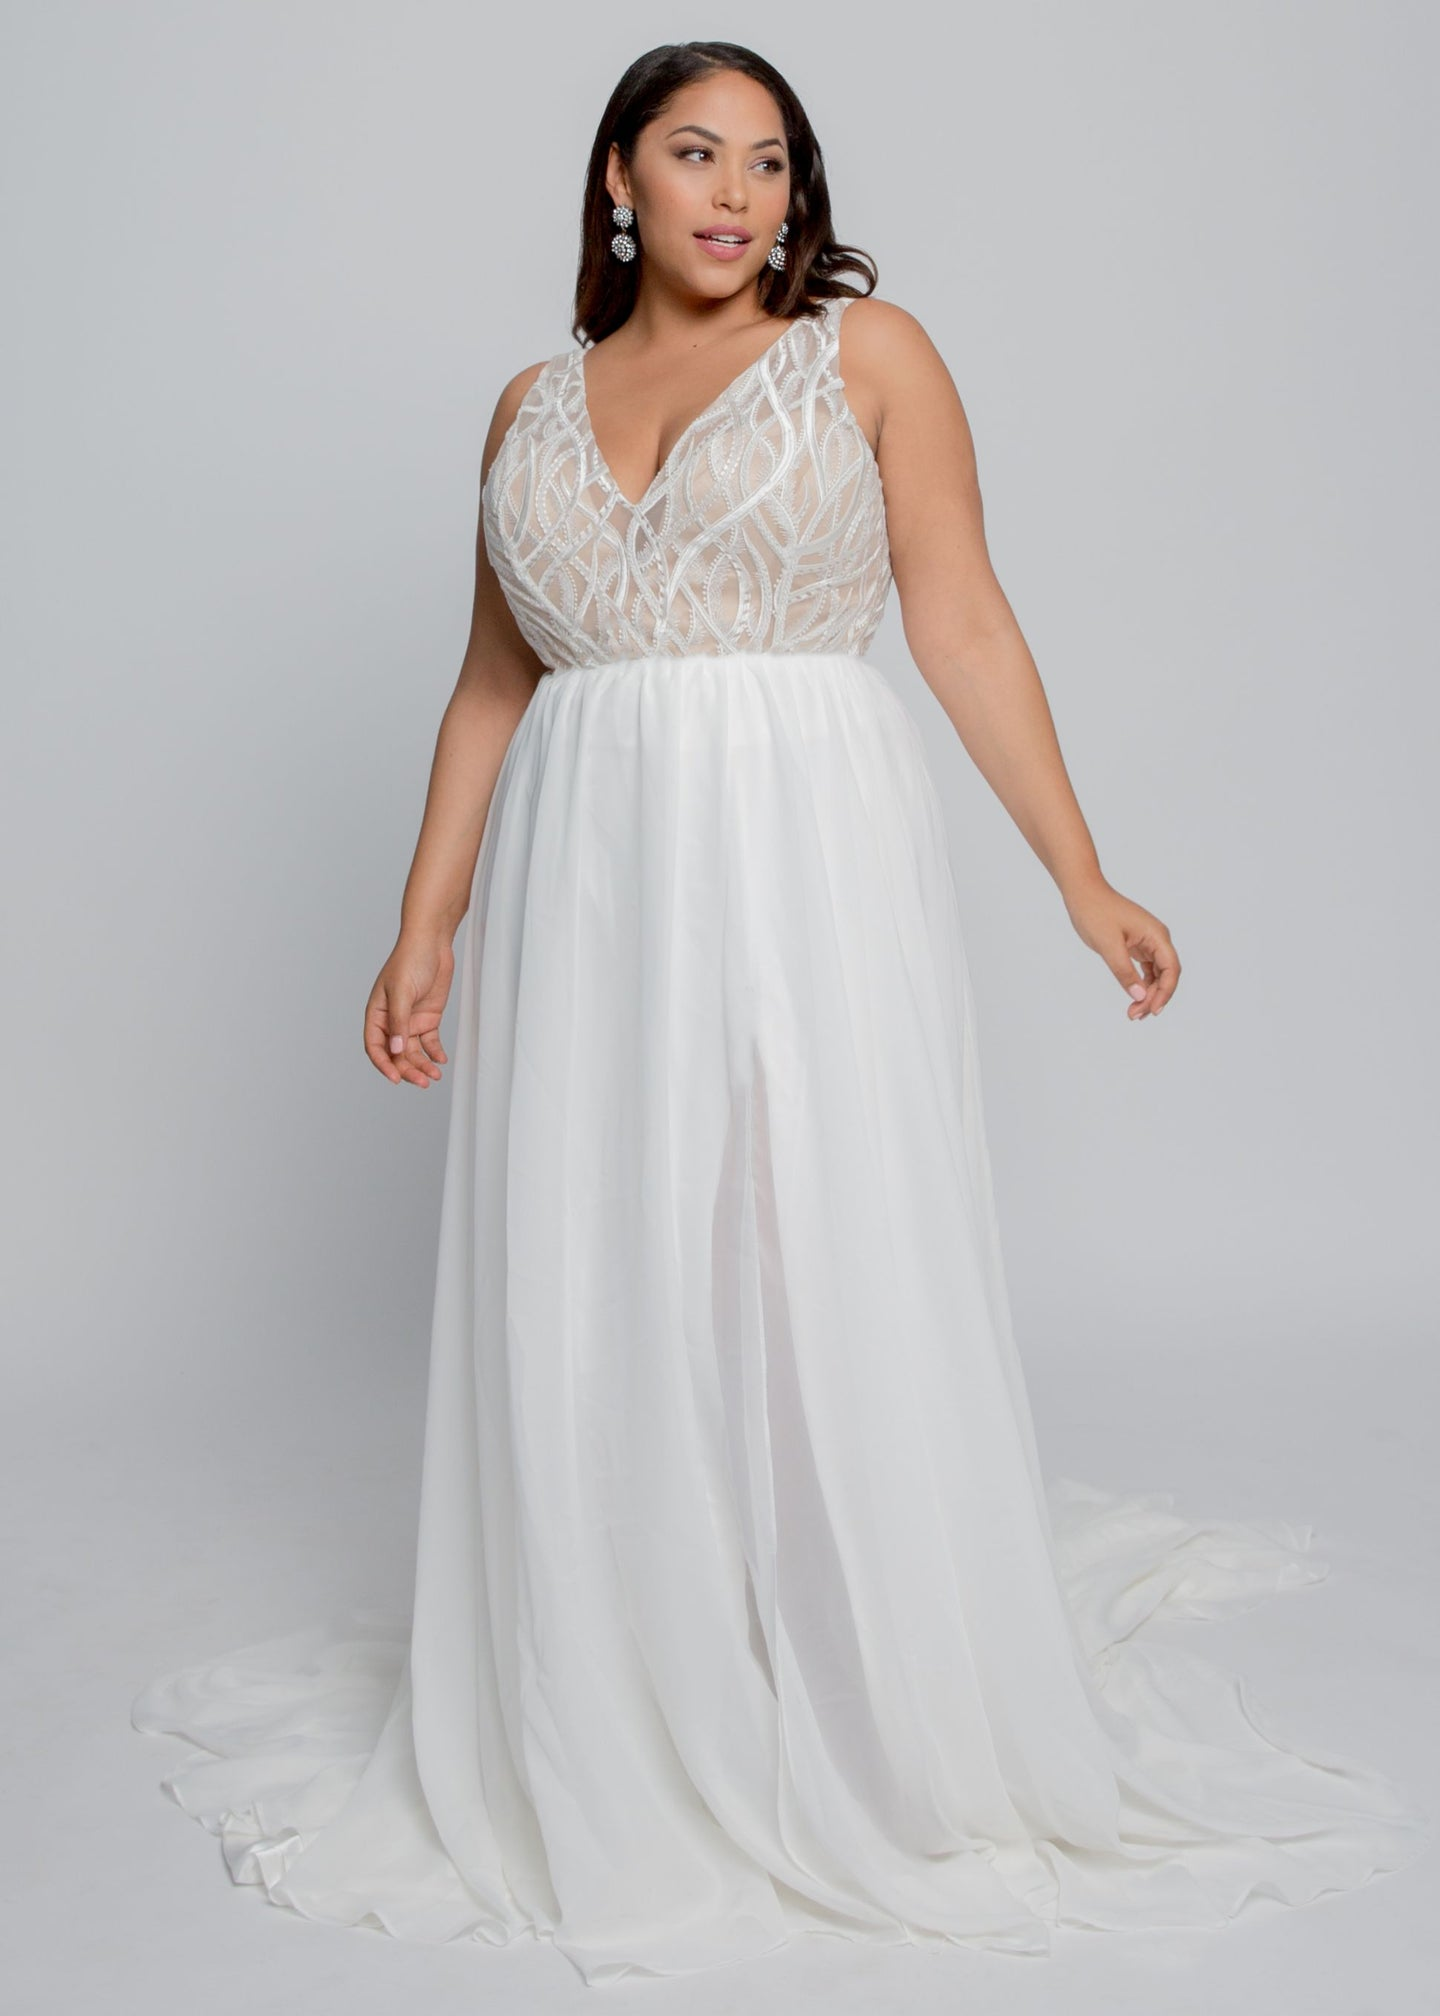 Gorgeous bridal gowns for all body shapes: plus size, curvy, or petite brides. Try on our wedding dresses at home. Size 0-30. Comfortable. Convenient. Fun. Lace or satin. Mermaid or A-line. This gown was made for the modern bride with its unique embroidered tulle V neck with ivory vines and understated beading combined with an airy chiffon skirt. The side slit in the front will allow for easy movement and a flowing skirt.